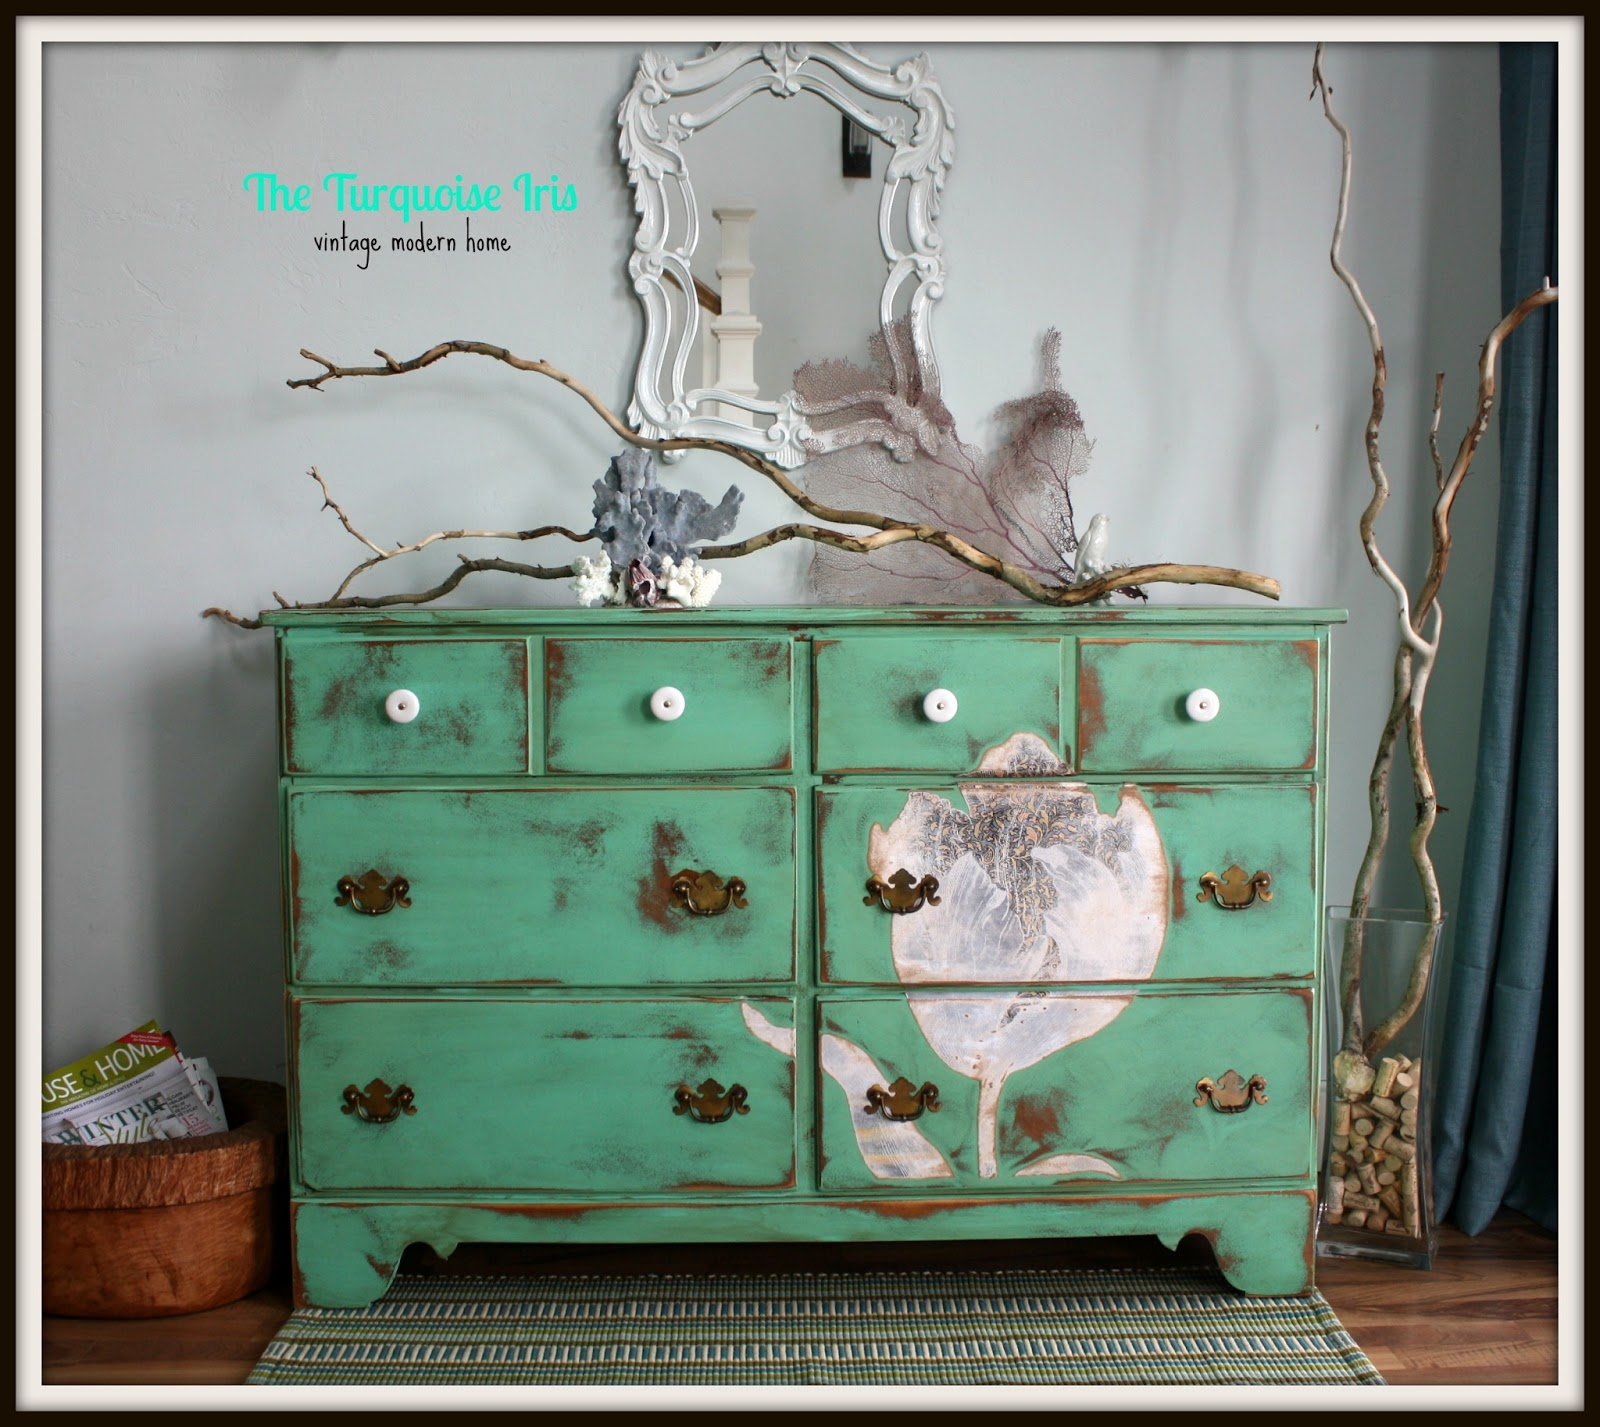 The turquoise iris furniture art mint green for Mint green furniture paint